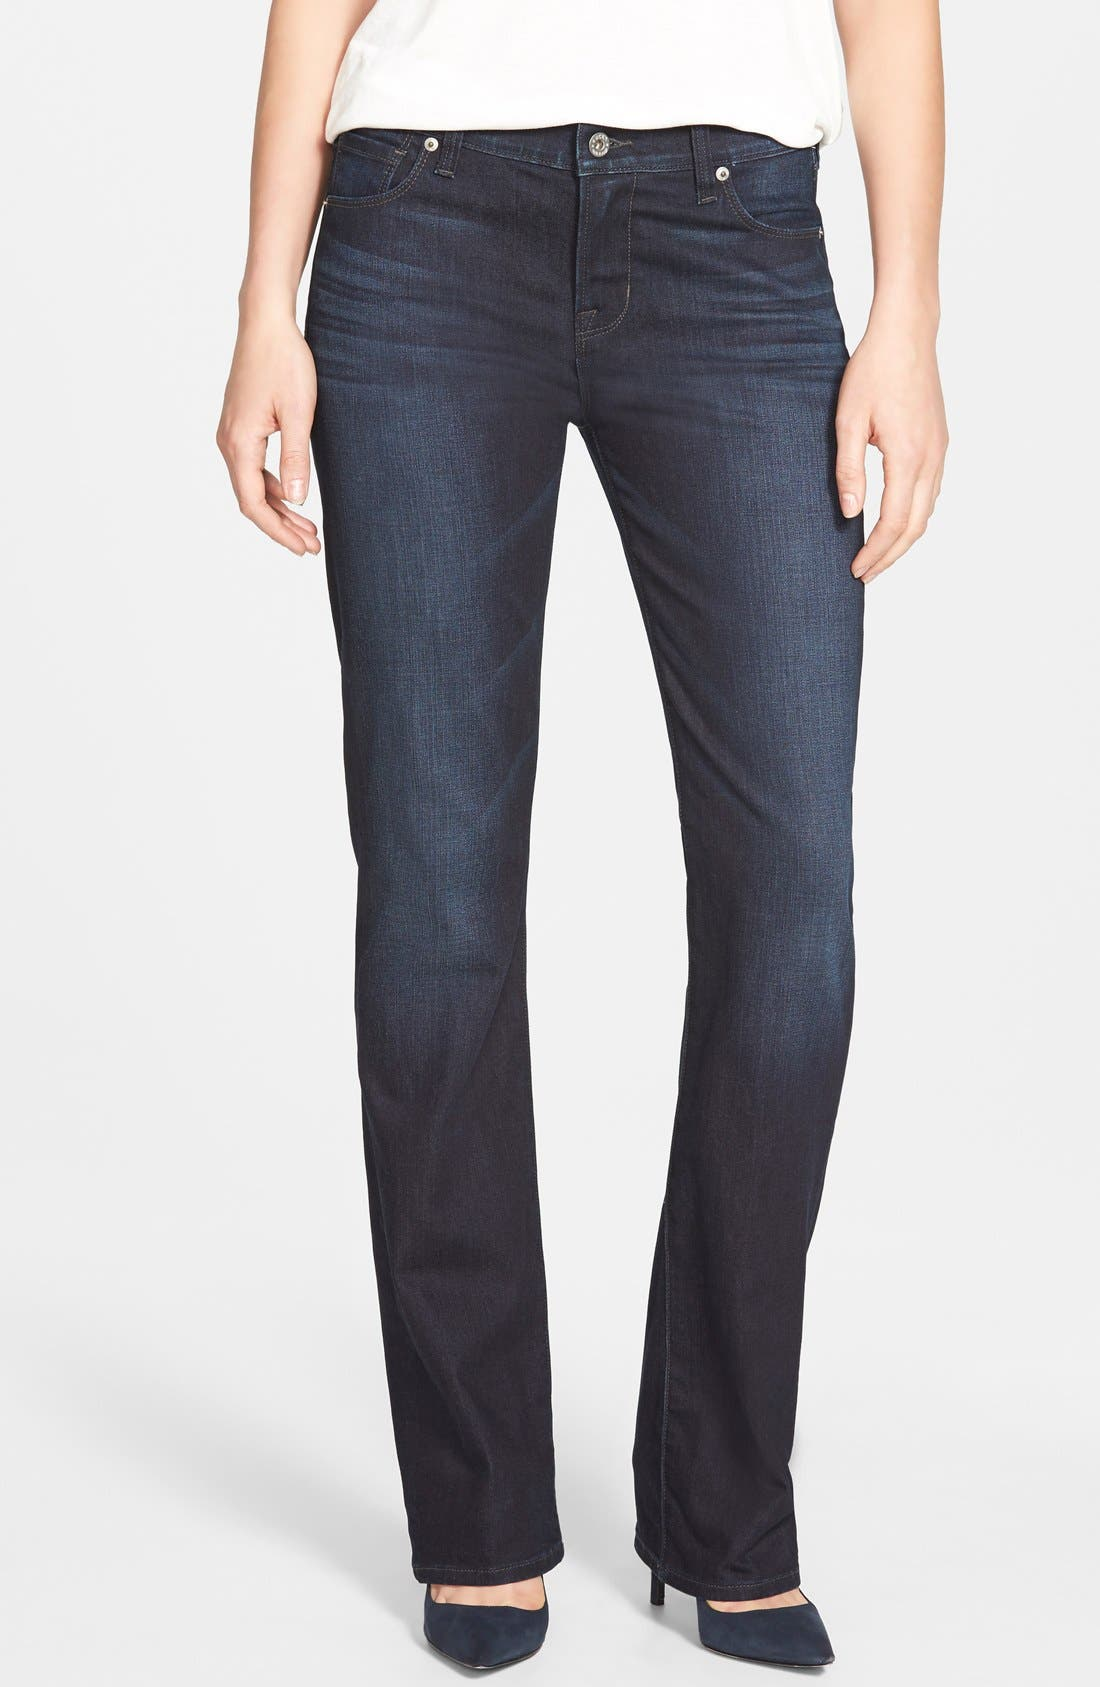 'Brooke' Stretch Bootcut Jeans,                             Main thumbnail 1, color,                             410